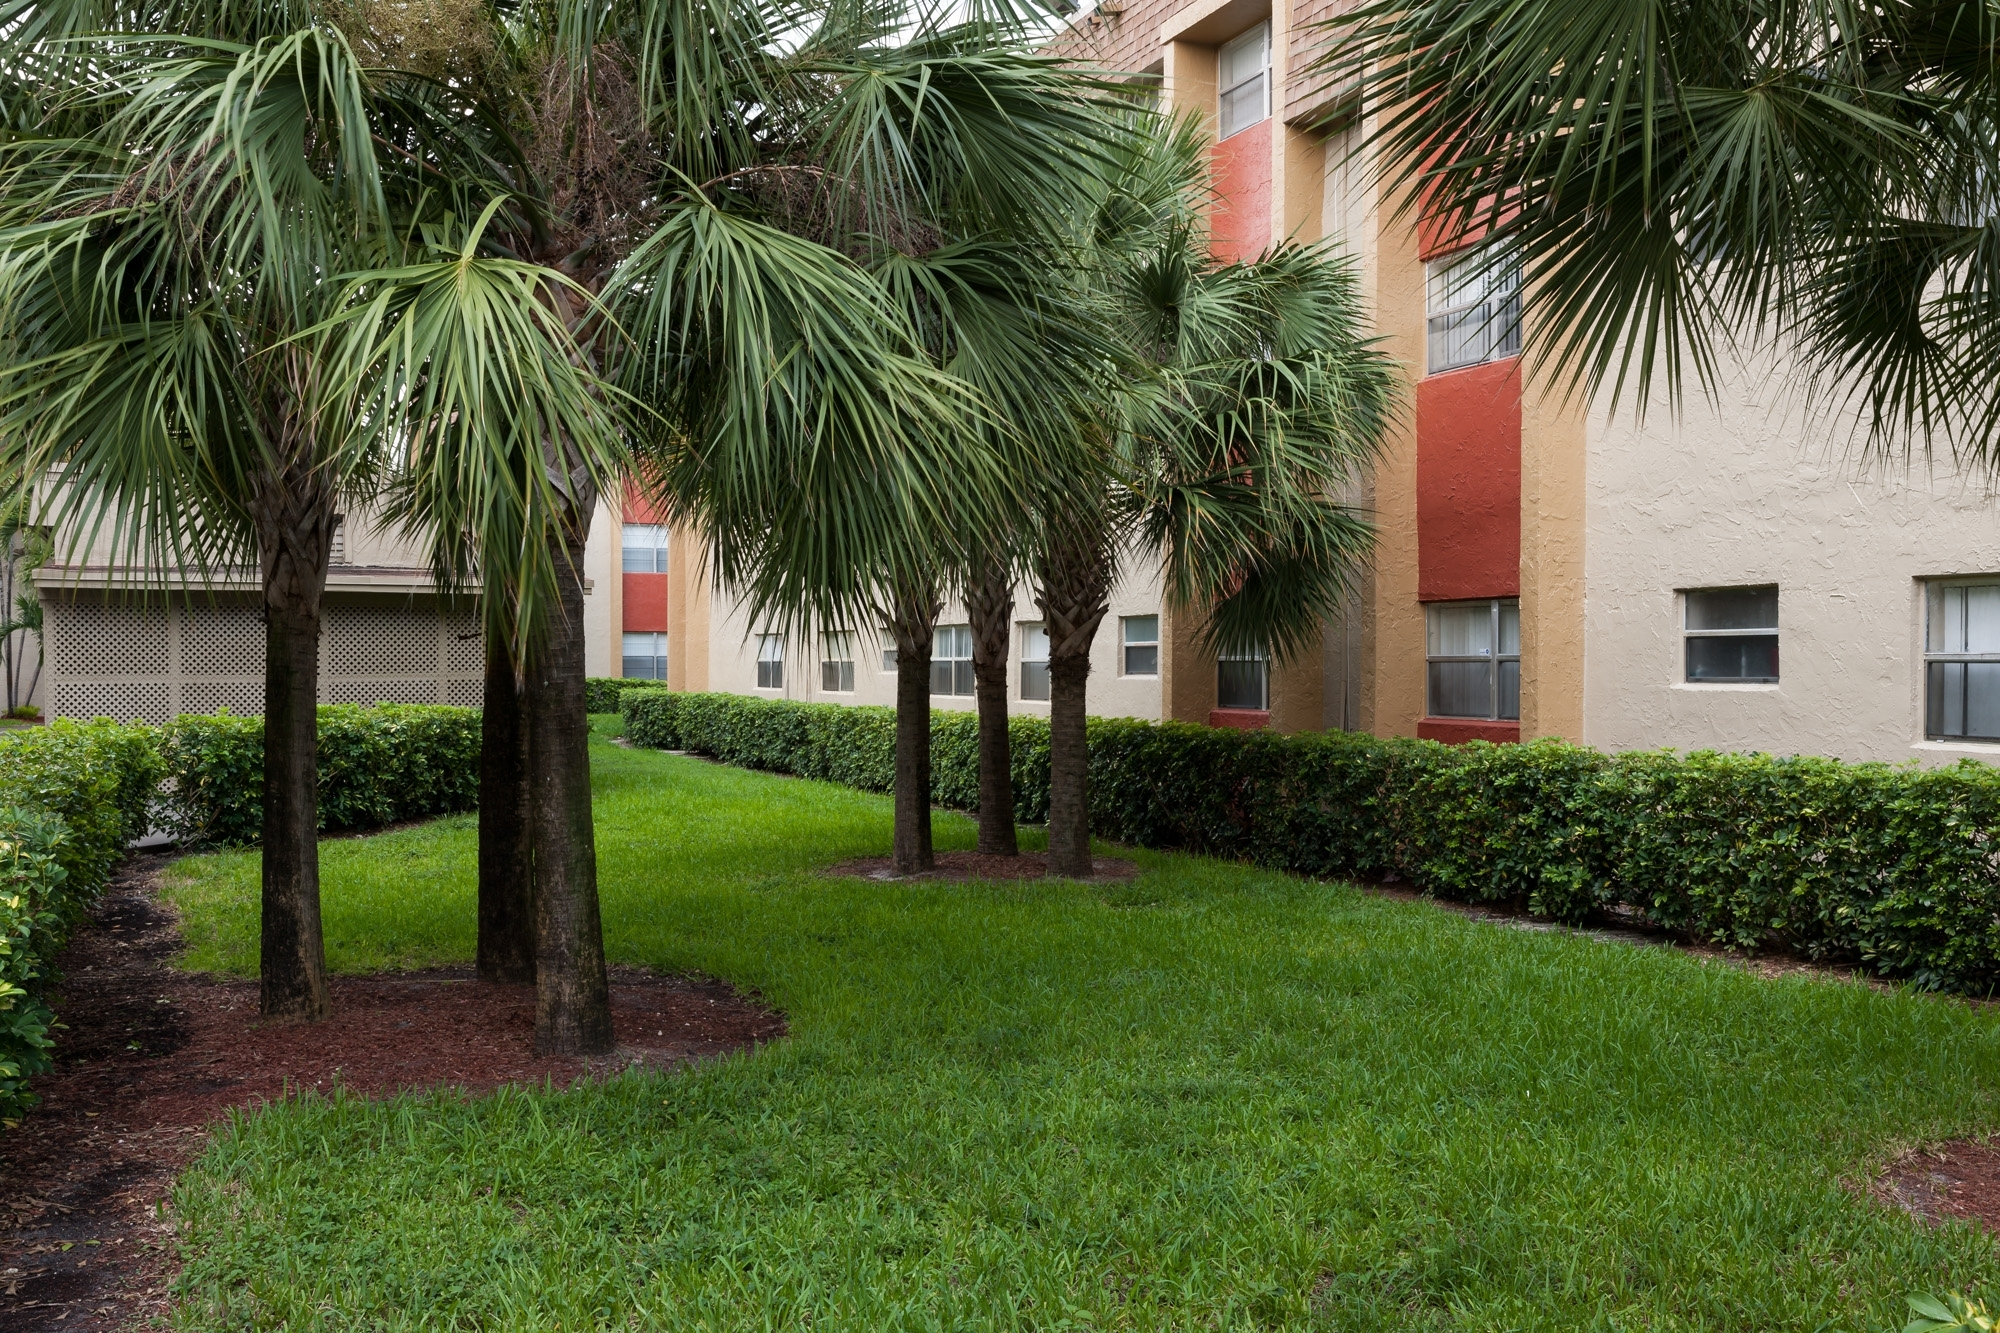 Park Plaza - Bainbridge Apartments throughout Miami Gardens Apartments